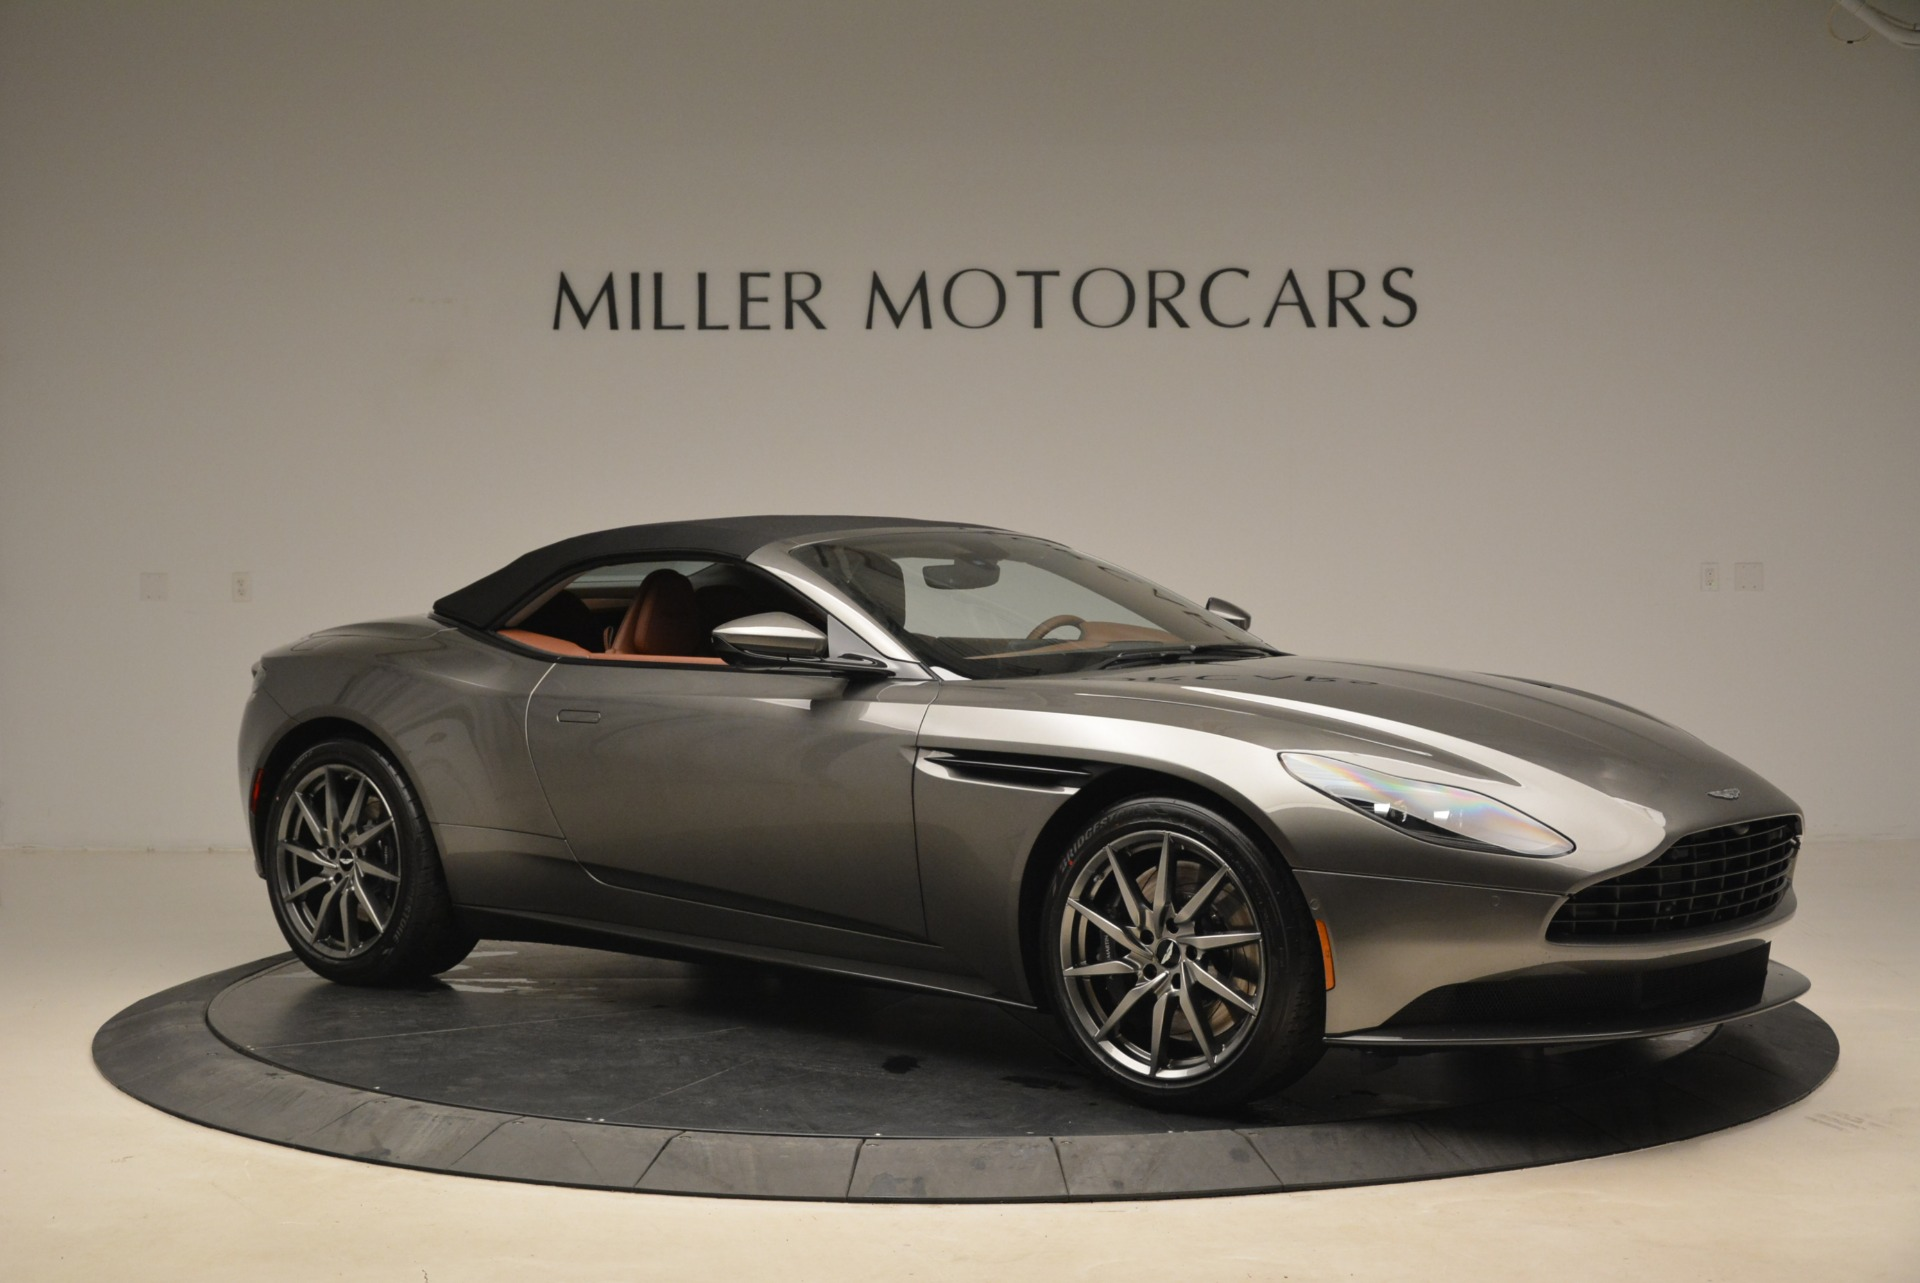 New 2019 Aston Martin DB11 Volante  For Sale In Greenwich, CT. Alfa Romeo of Greenwich, A1284 2209_p22